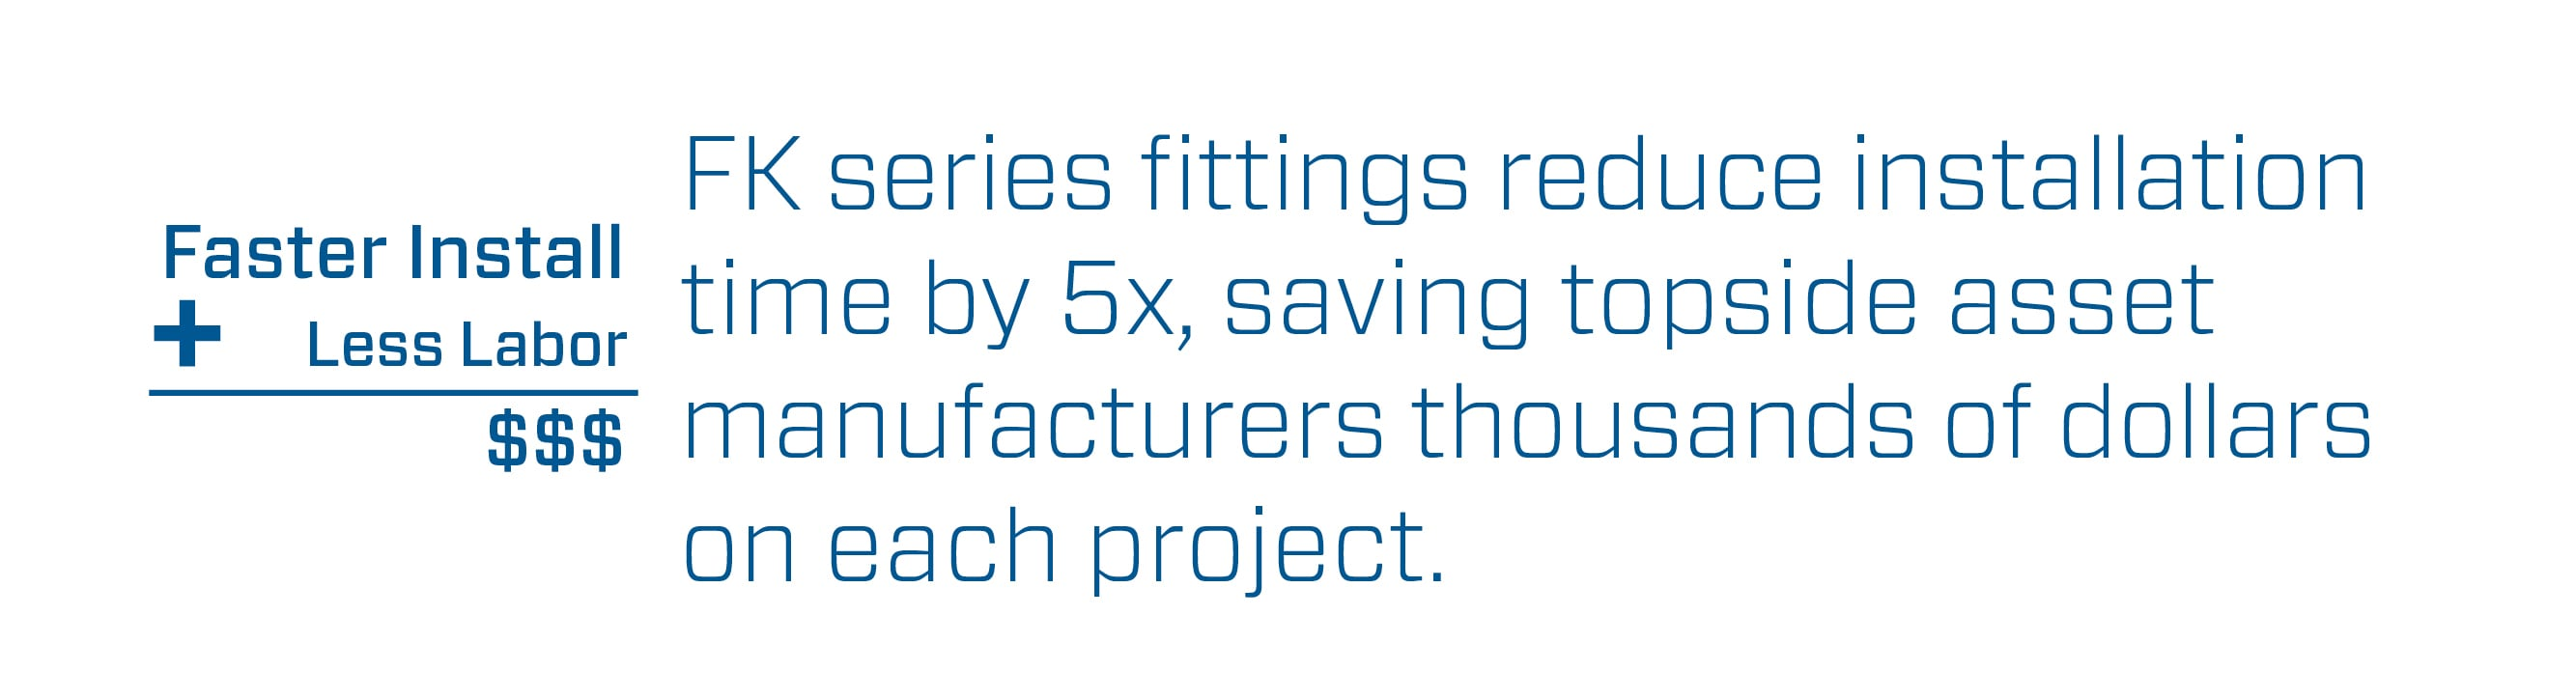 FK Series Fittings Cost Savings Infographic